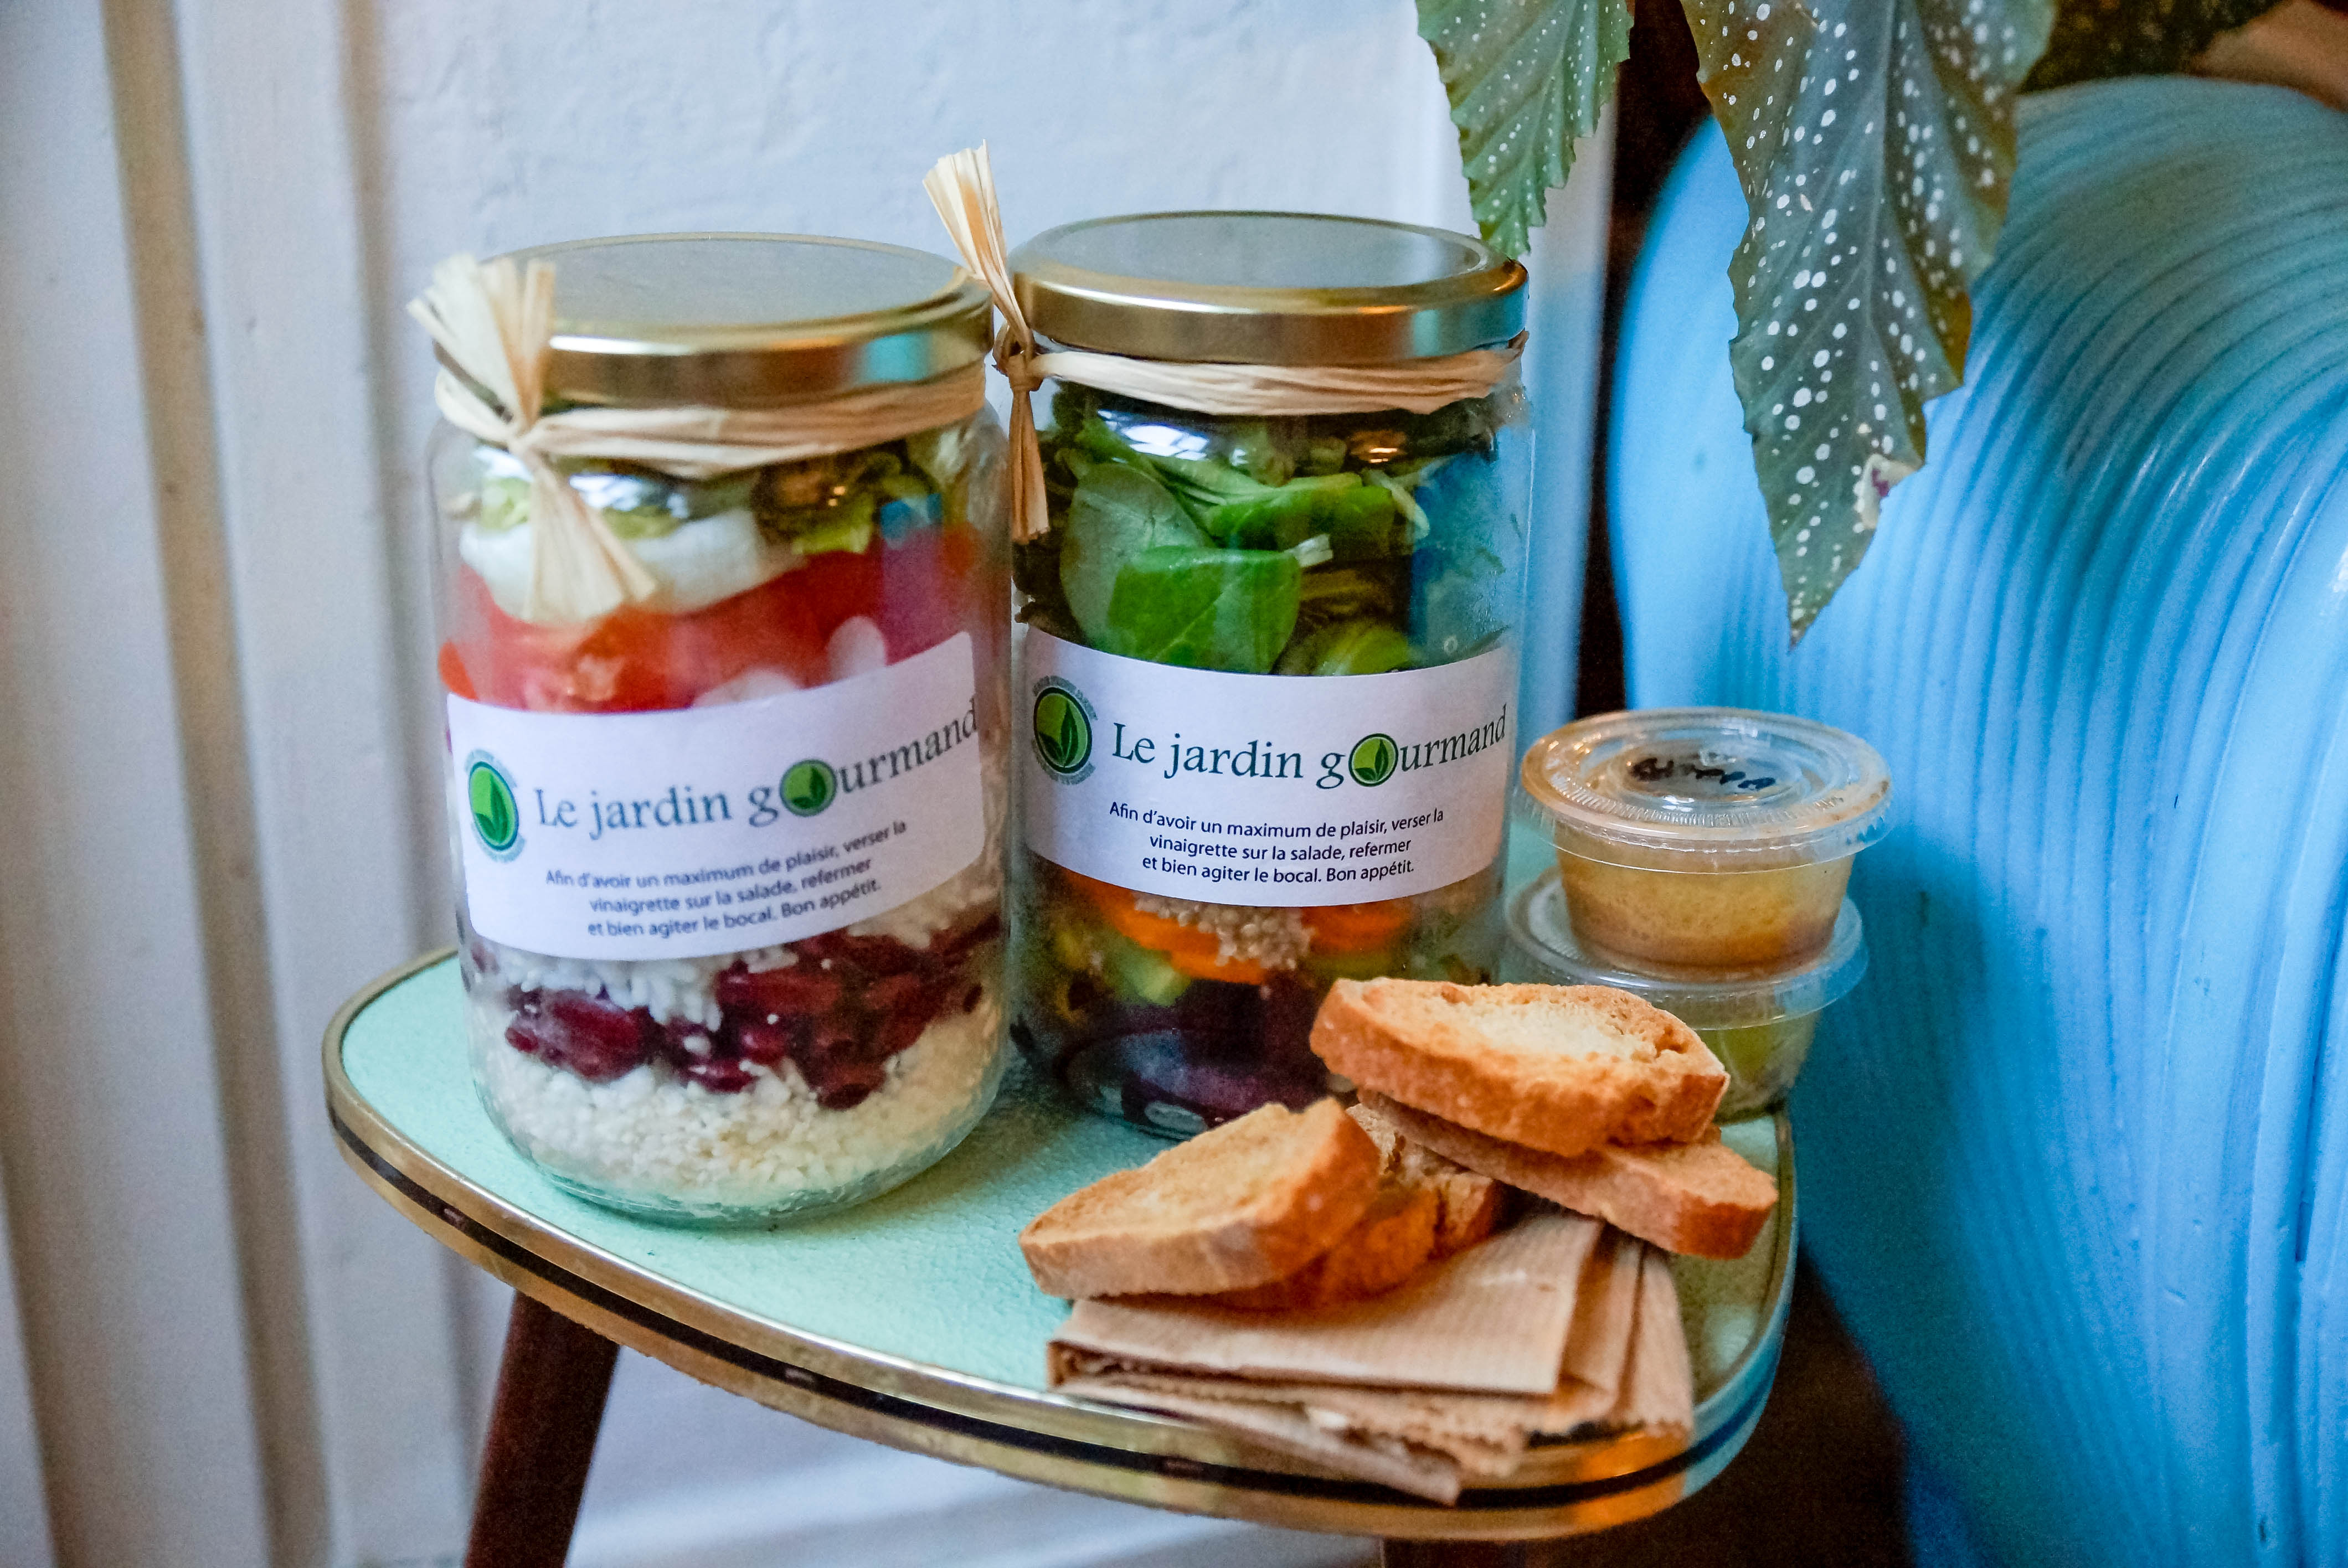 Le jardin gourmand toulouse bambichoses for O jardin gourmand toulouse